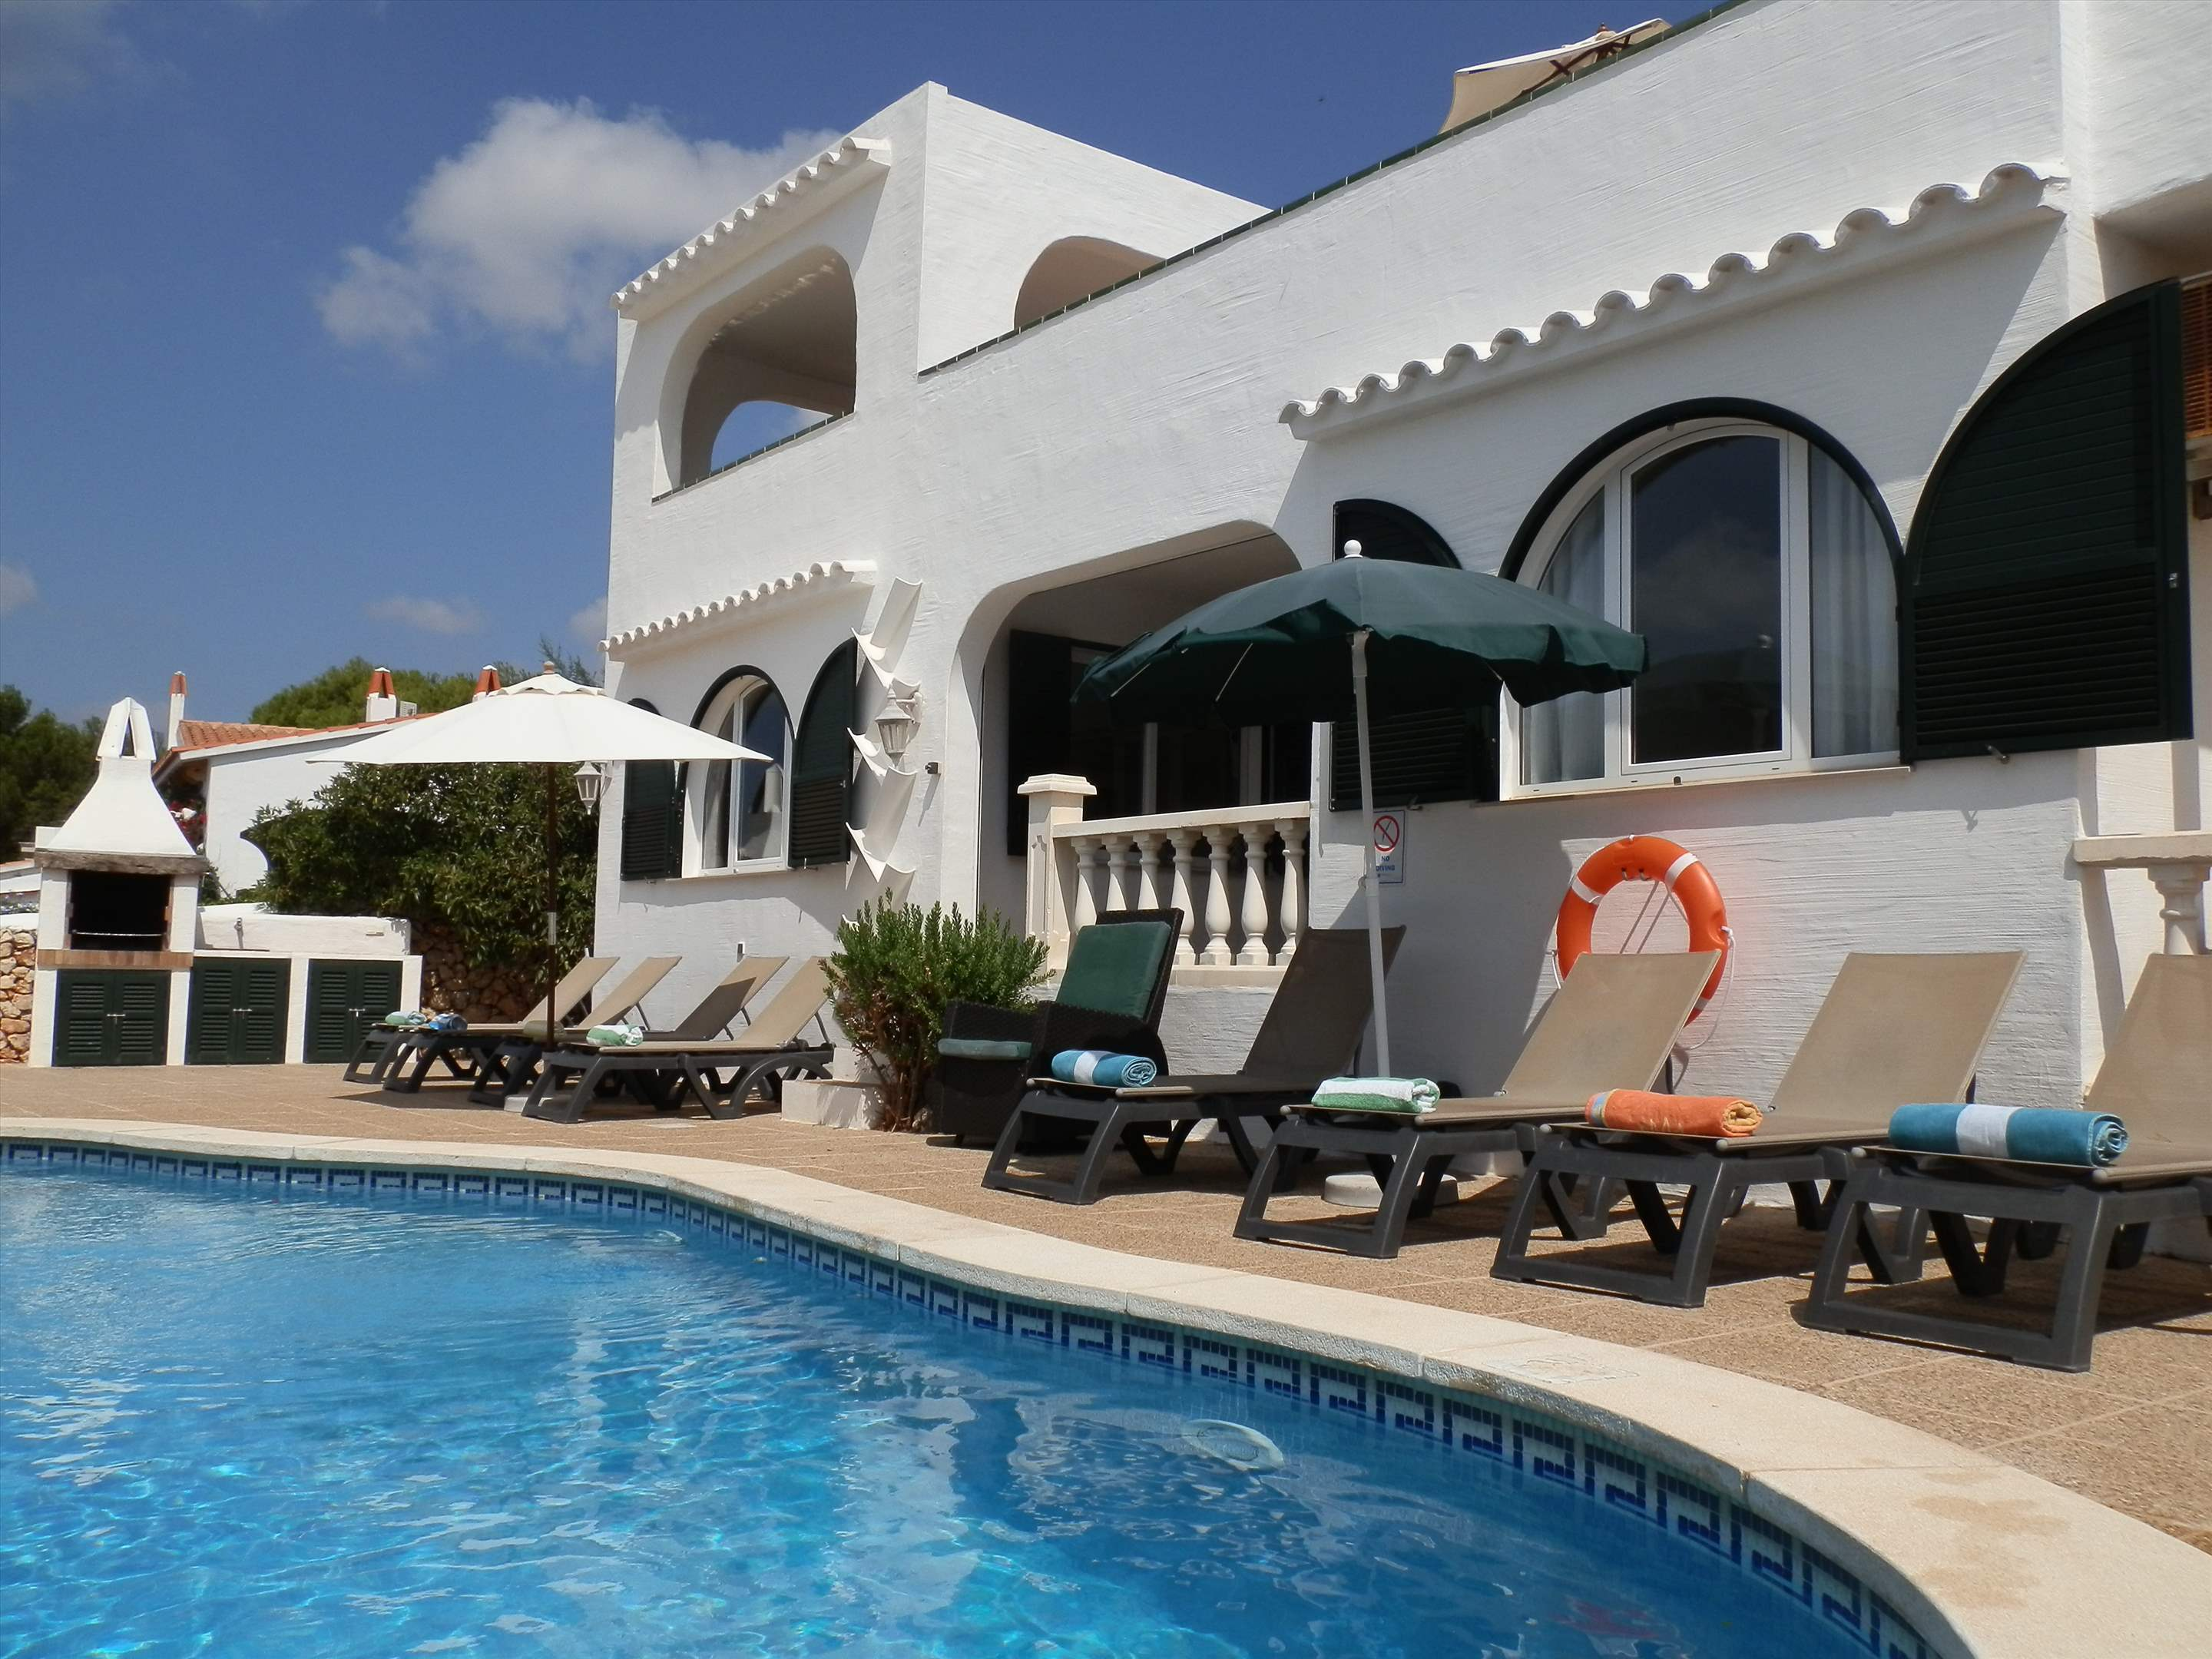 Villa La Palmera, 4 bedroom villa in Mahon, San Luis & South East, Menorca